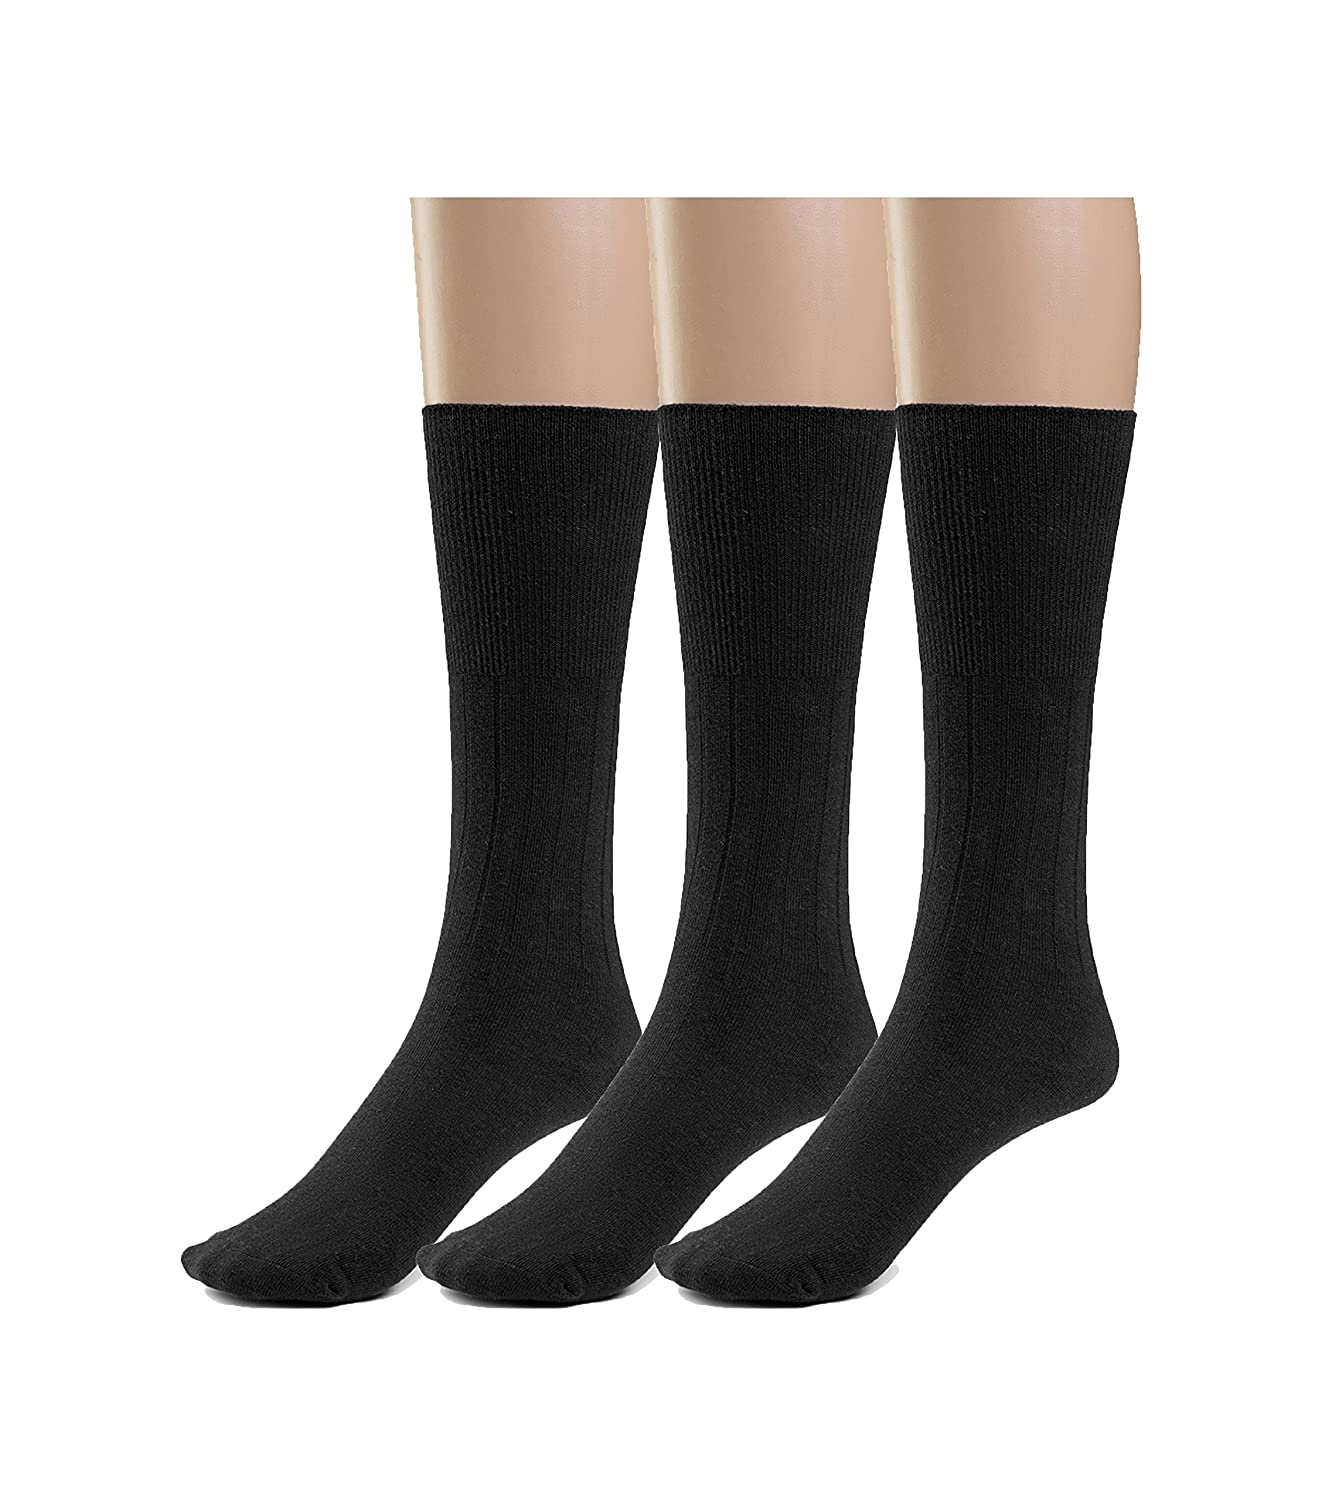 1c66b15c2237 Amazon.com: Silky Toes 3 or 6 Pack Women's Diabetic Premium Soft  Non-Binding Cotton Dress Socks, Also Available In Plus Sizes: Clothing